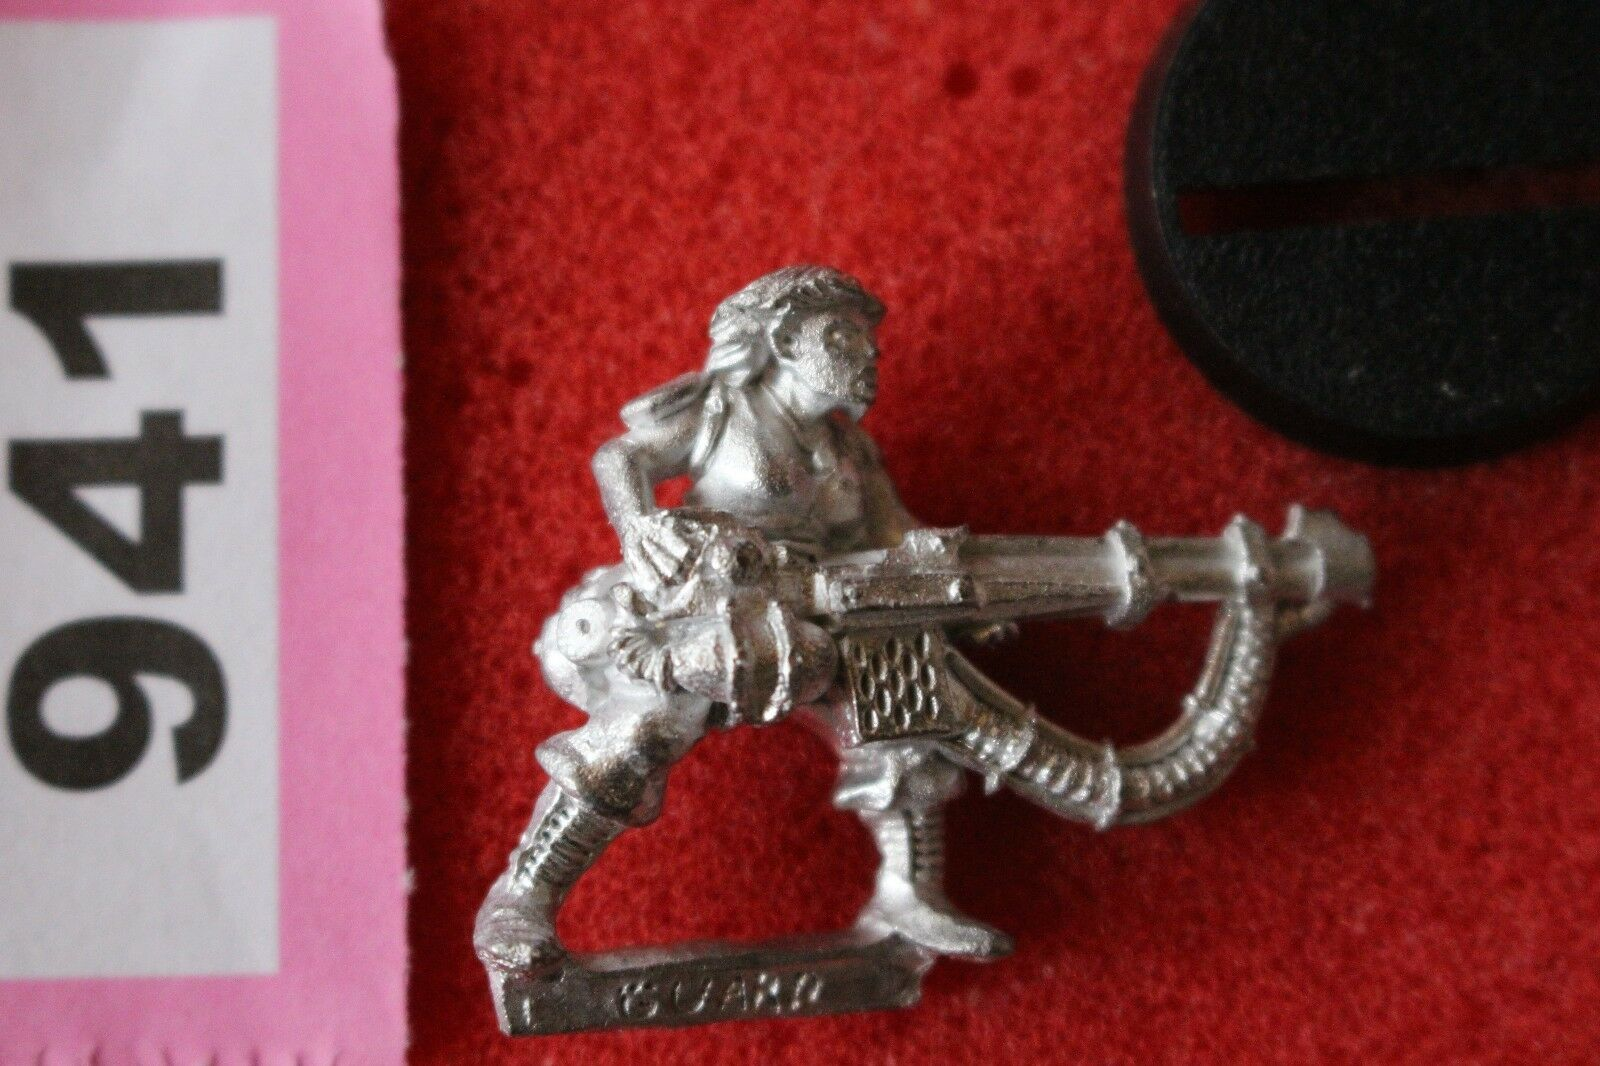 Games Workshop Warhammer 40k Rogue Trader Imperial Guard Autocannon Female Mint